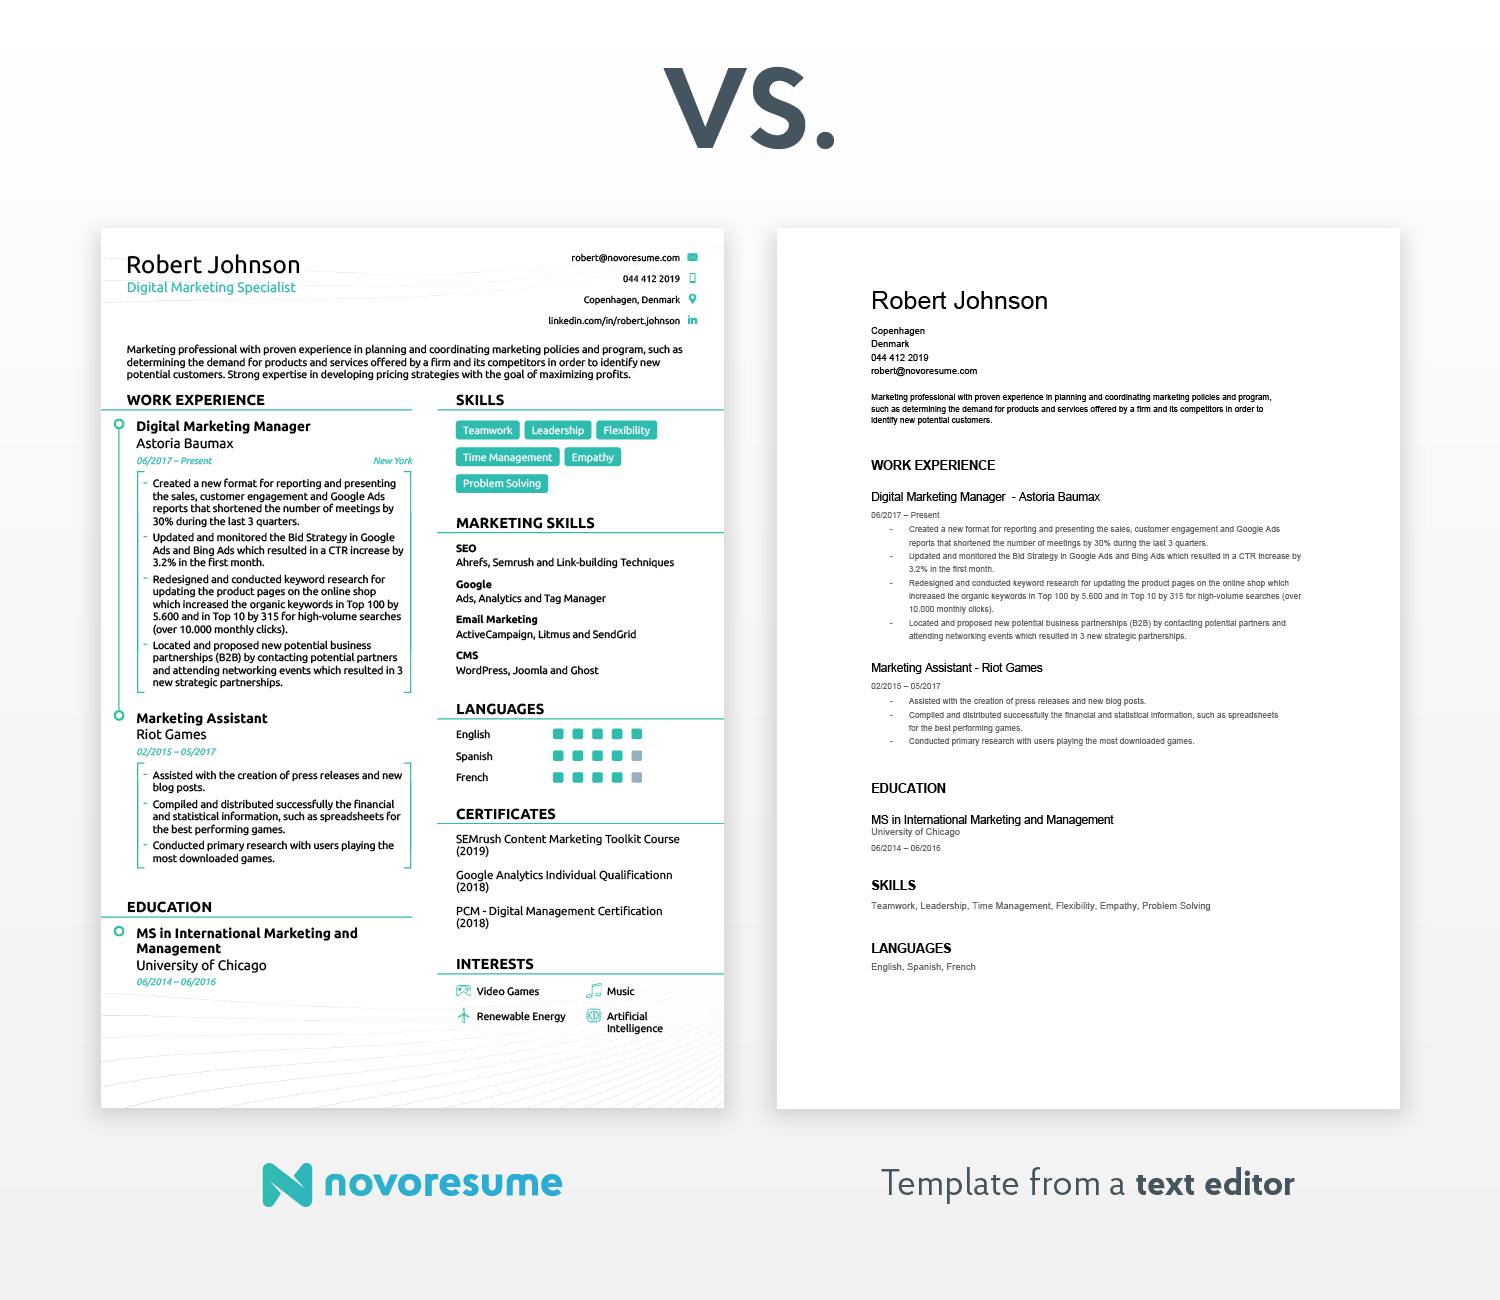 How To Write A Resume For A Job Modern Template how to write a resume for a job wikiresume.com